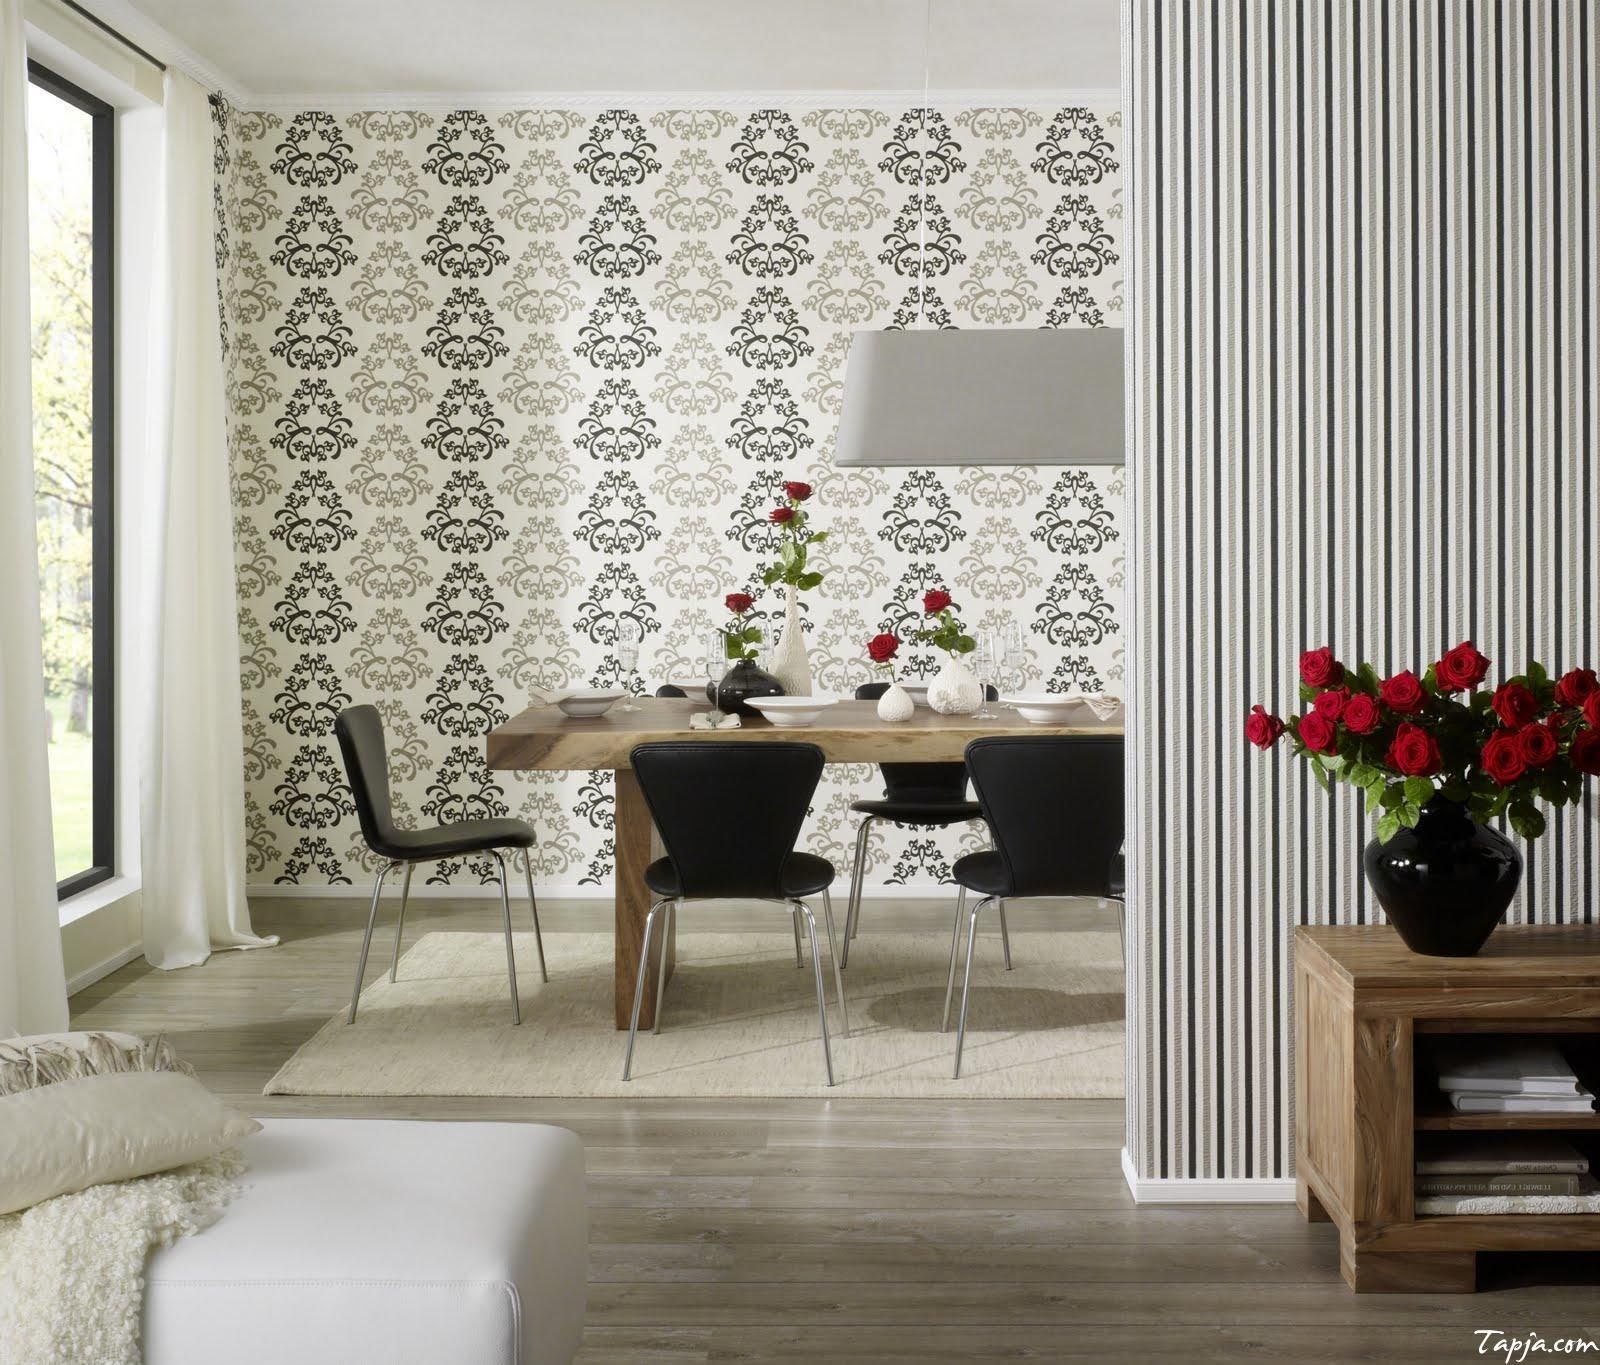 Classy Dining Room Interior Decorating With Wallpaper As Well Big ...